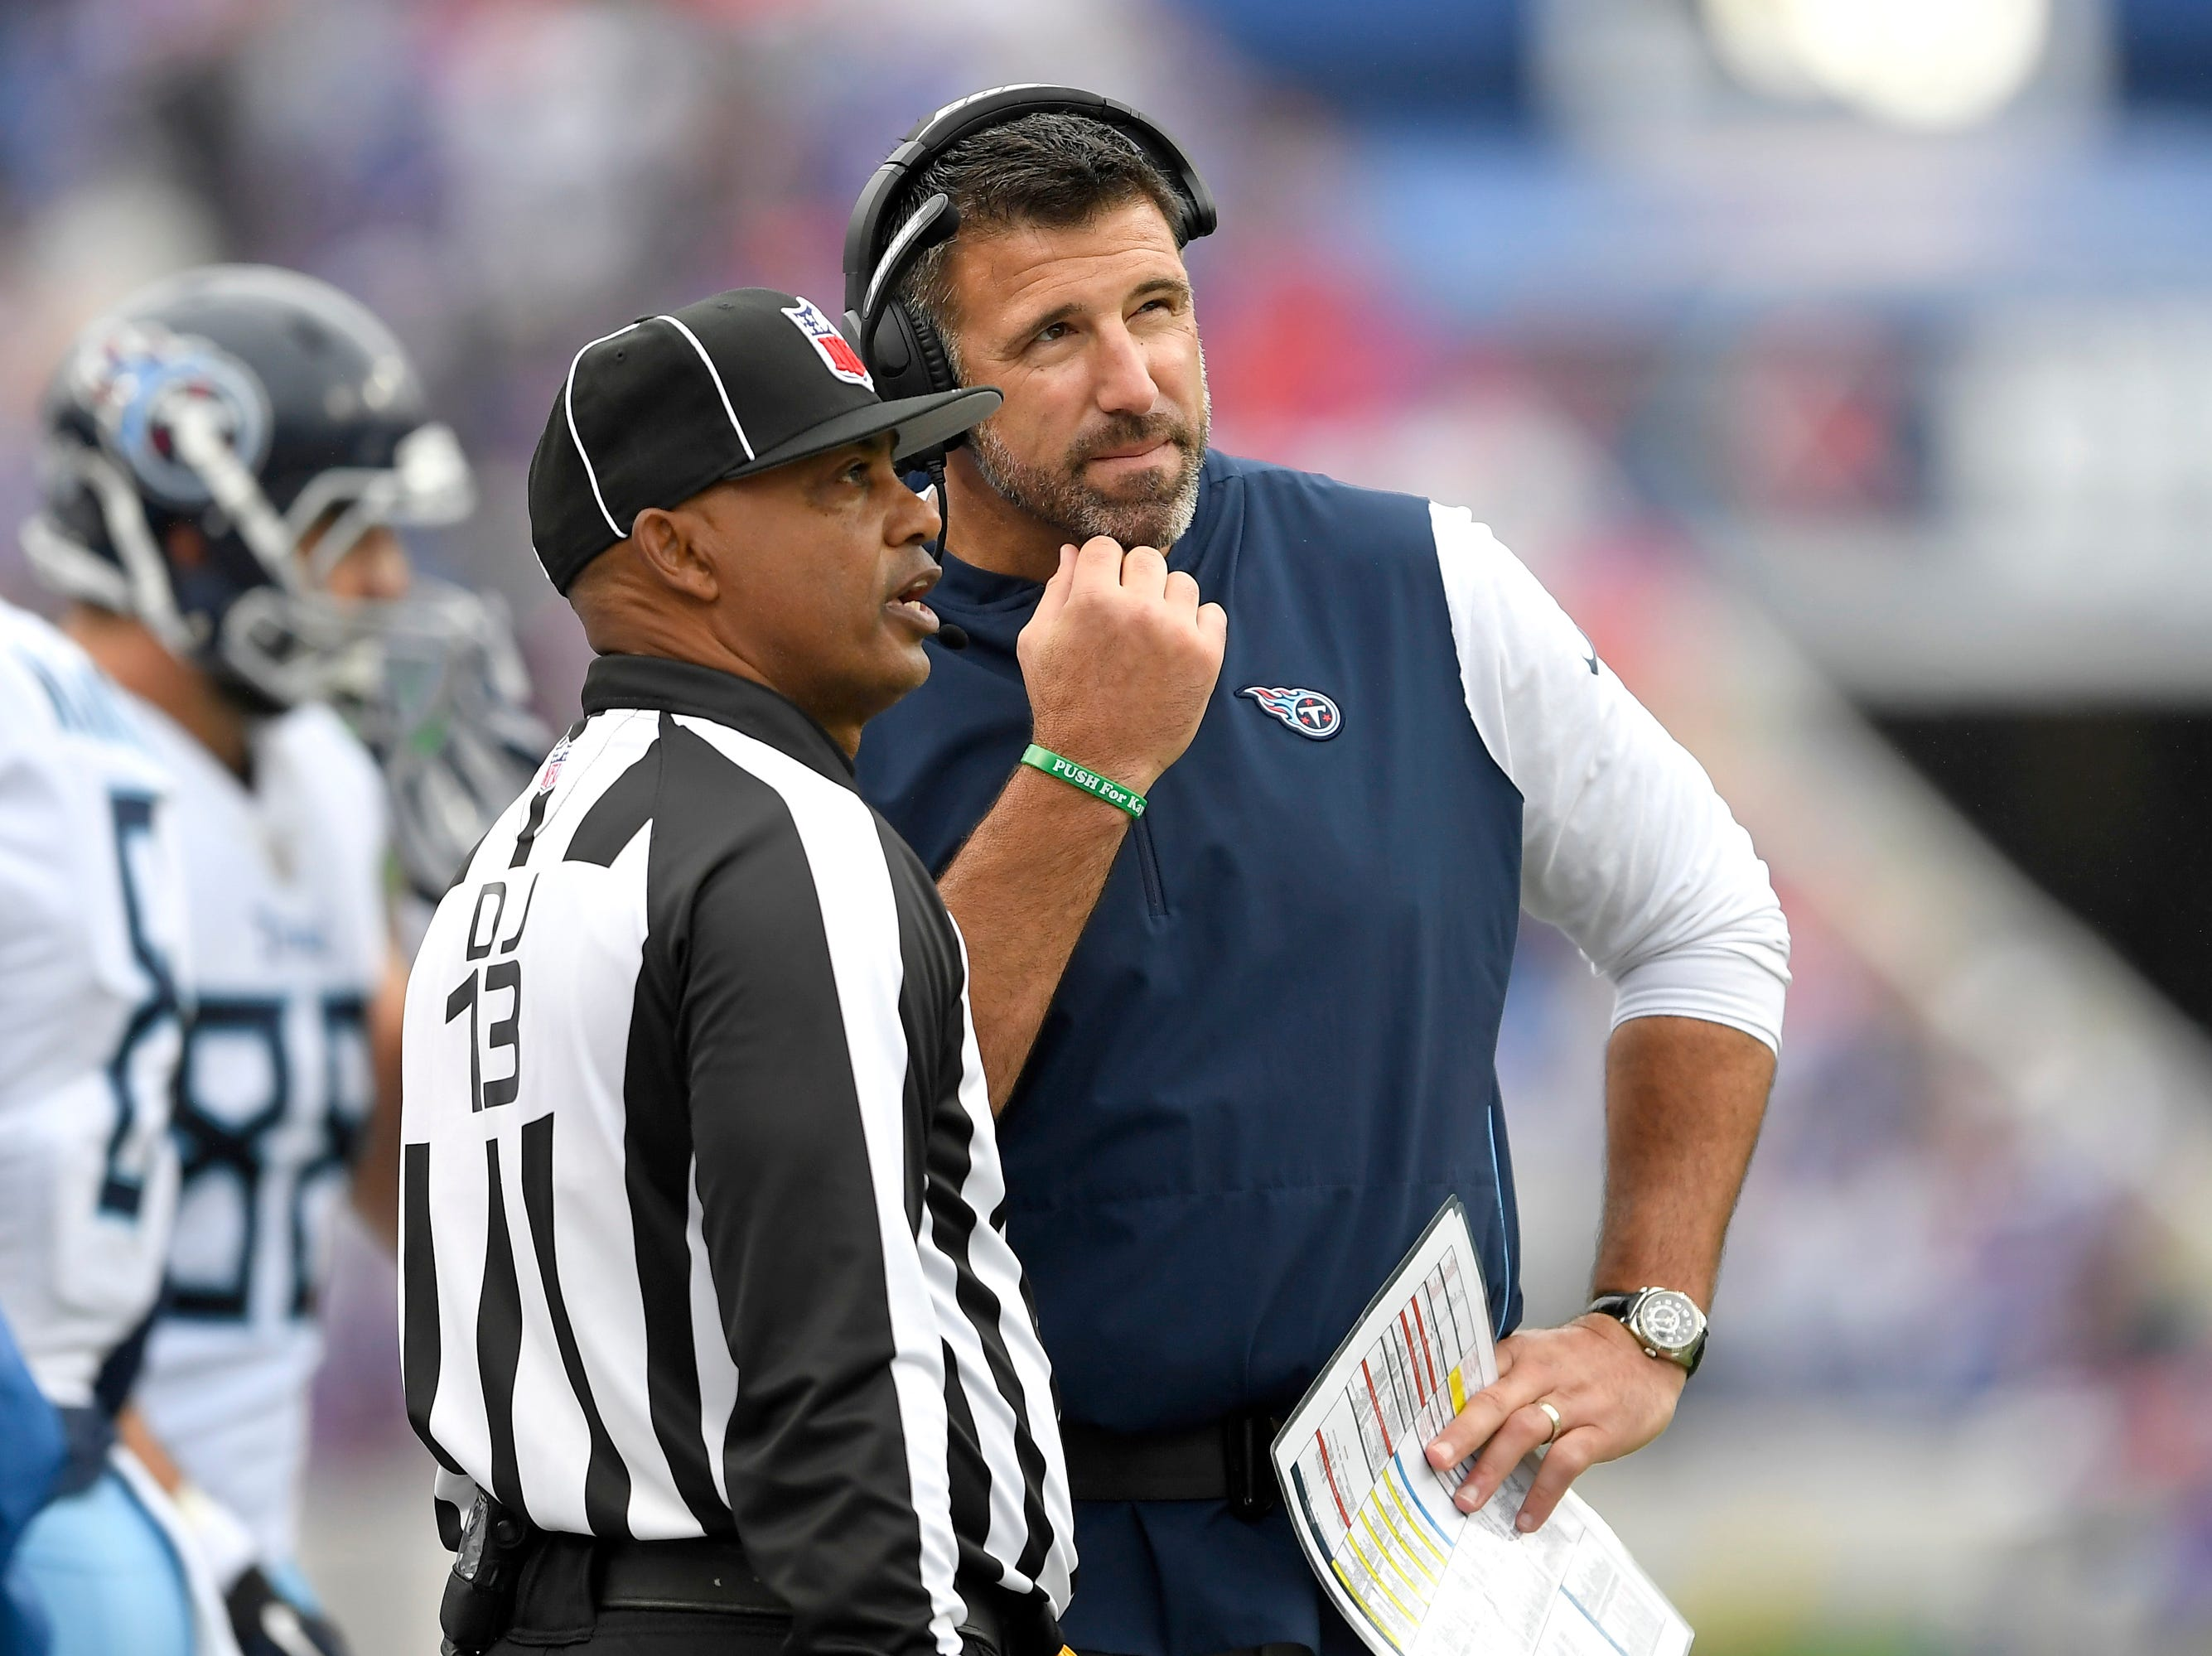 Tennessee Titans head coach Mike Vrabel, right, talks to head linesman Patrick Turner (13) during the first half of an NFL football game against the Buffalo Bills, Sunday, Oct. 7, 2018, in Orchard Park, N.Y. (AP Photo/Adrian Kraus)